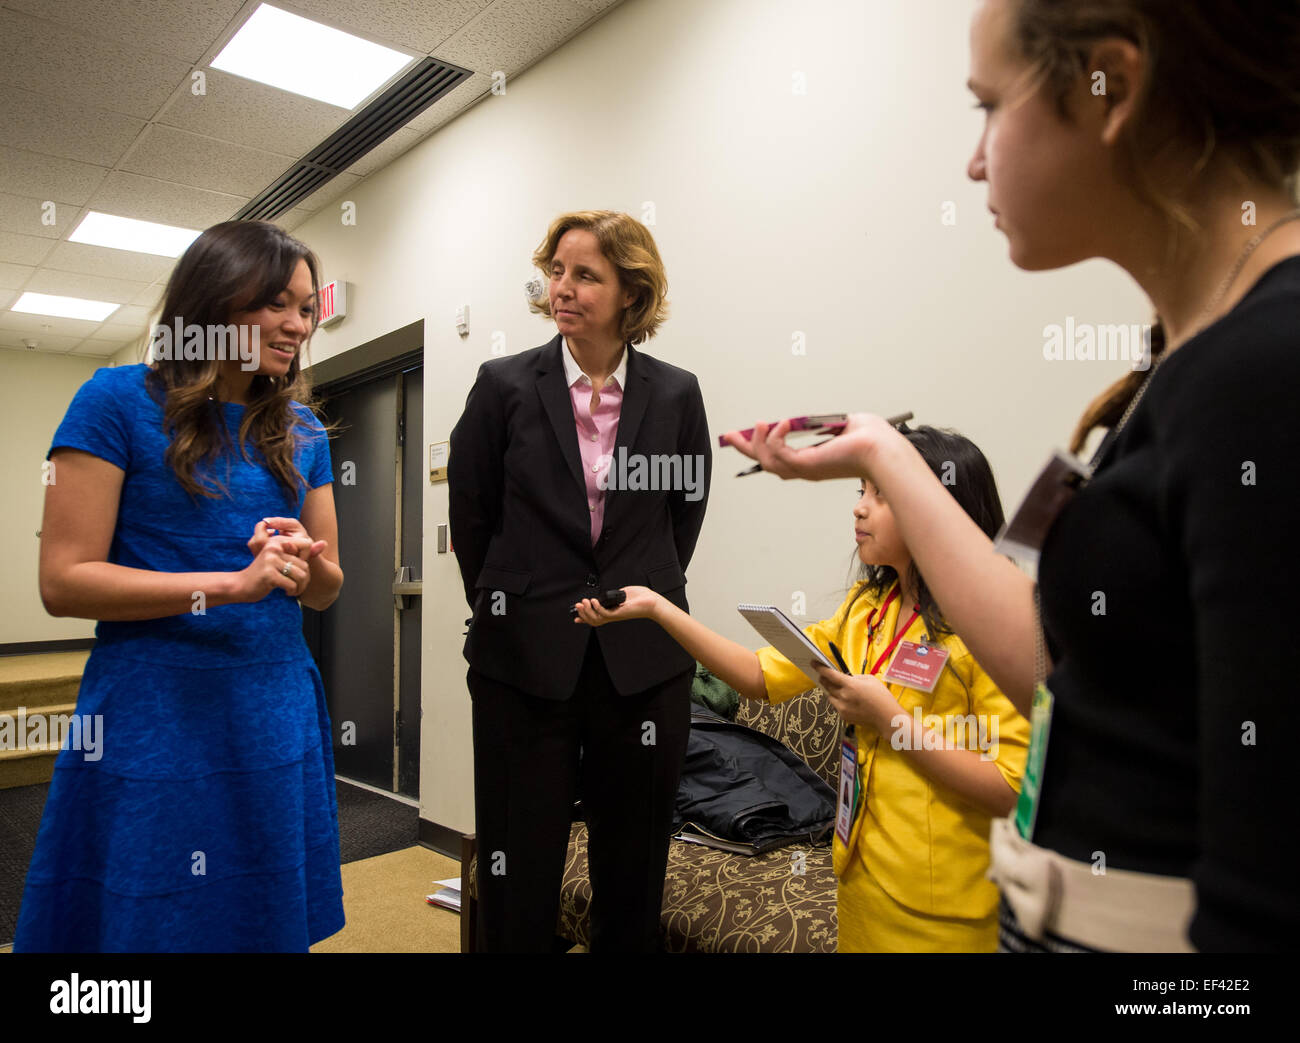 Kathy Pham of U.S. Digital Service, left, and United States Chief Technology Officer (CTO) Megan Smith answer questions - Stock Image